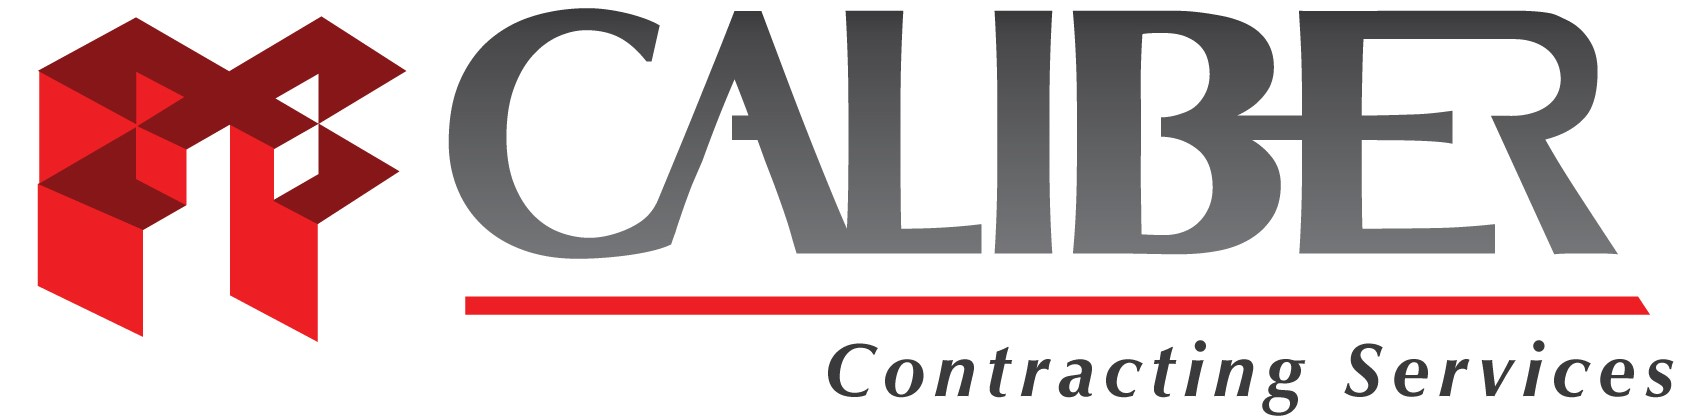 Caliber Contracting Services, Inc. – Pittsburgh, PA - Ability, Character, Collaberation… Caliber, Inc